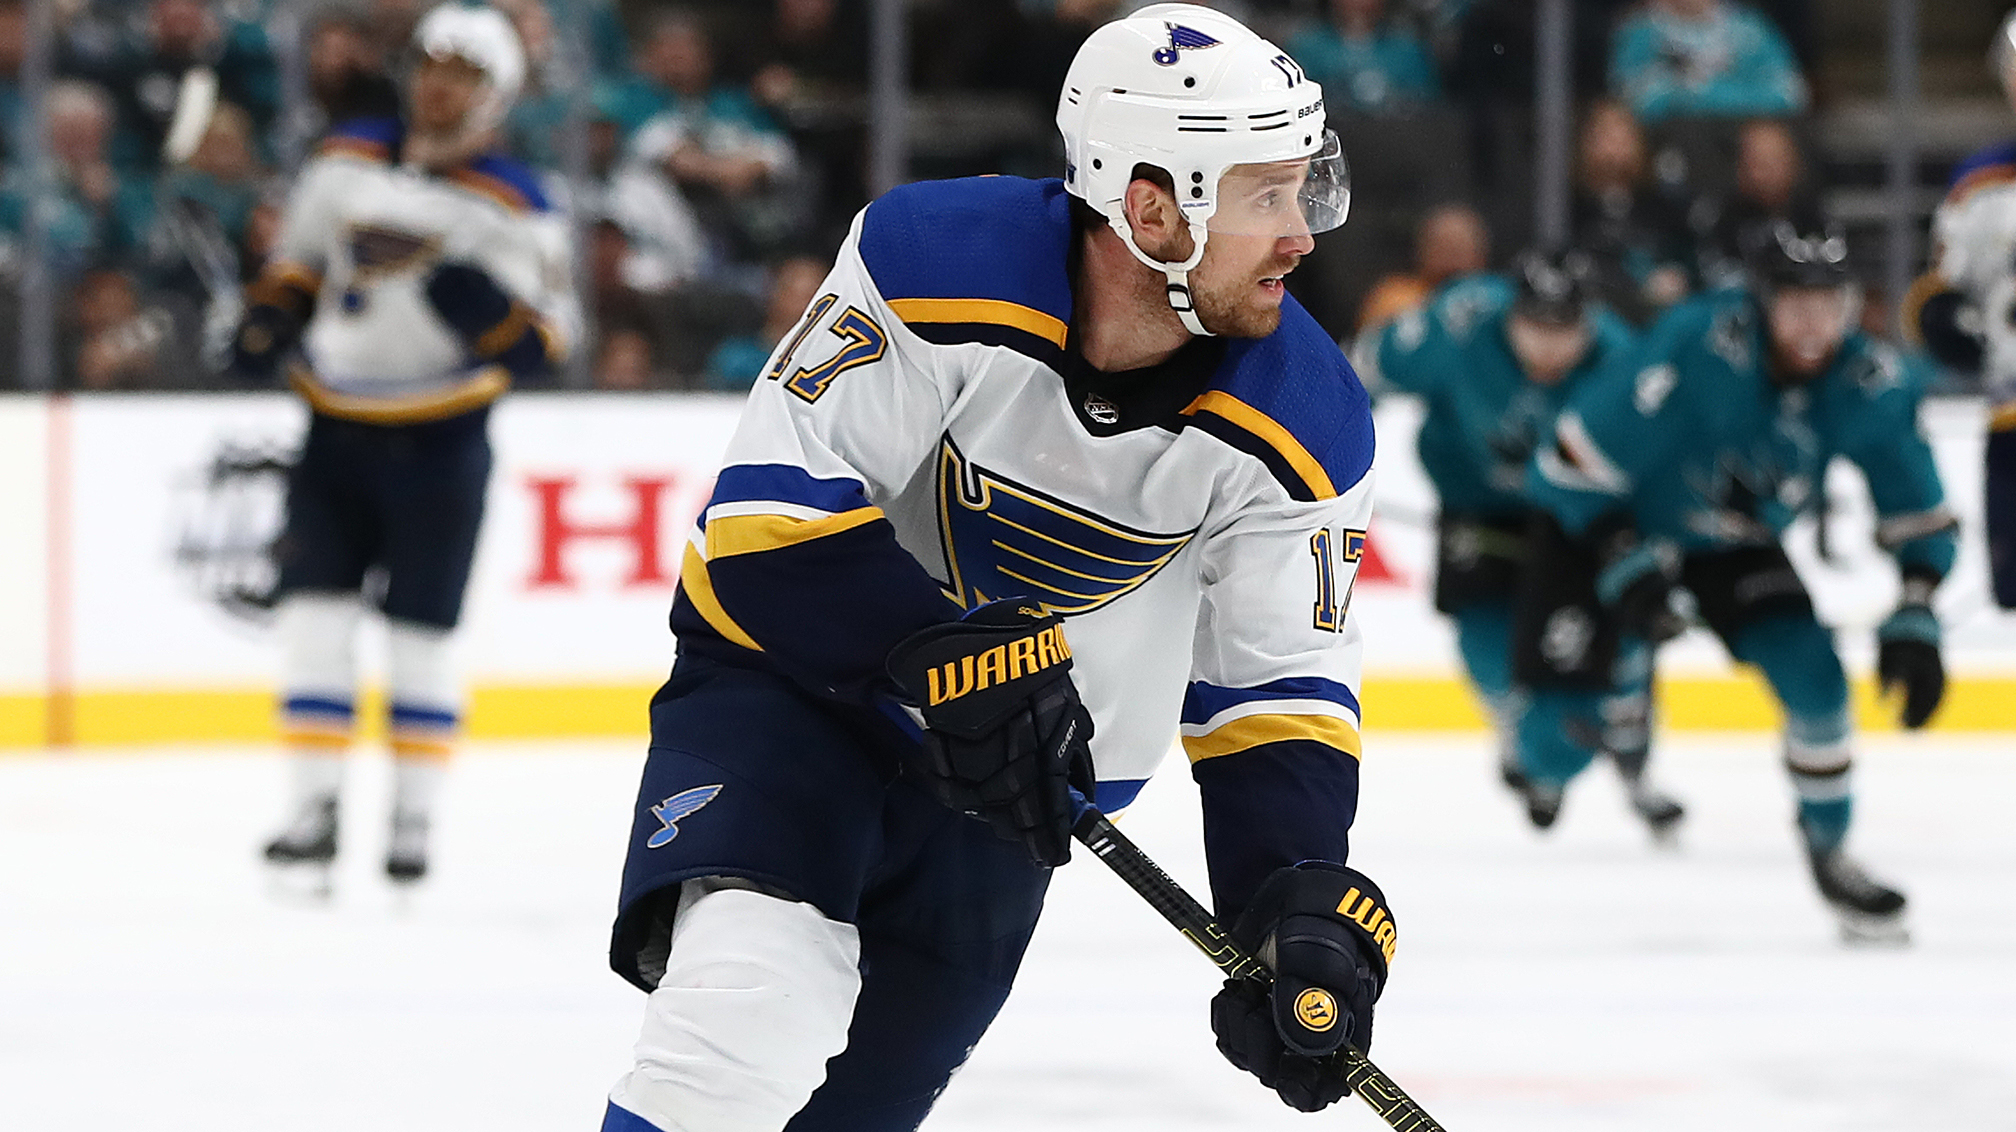 Hockey Daily Dose: That's why they call it the Blues - Fantasy Columns